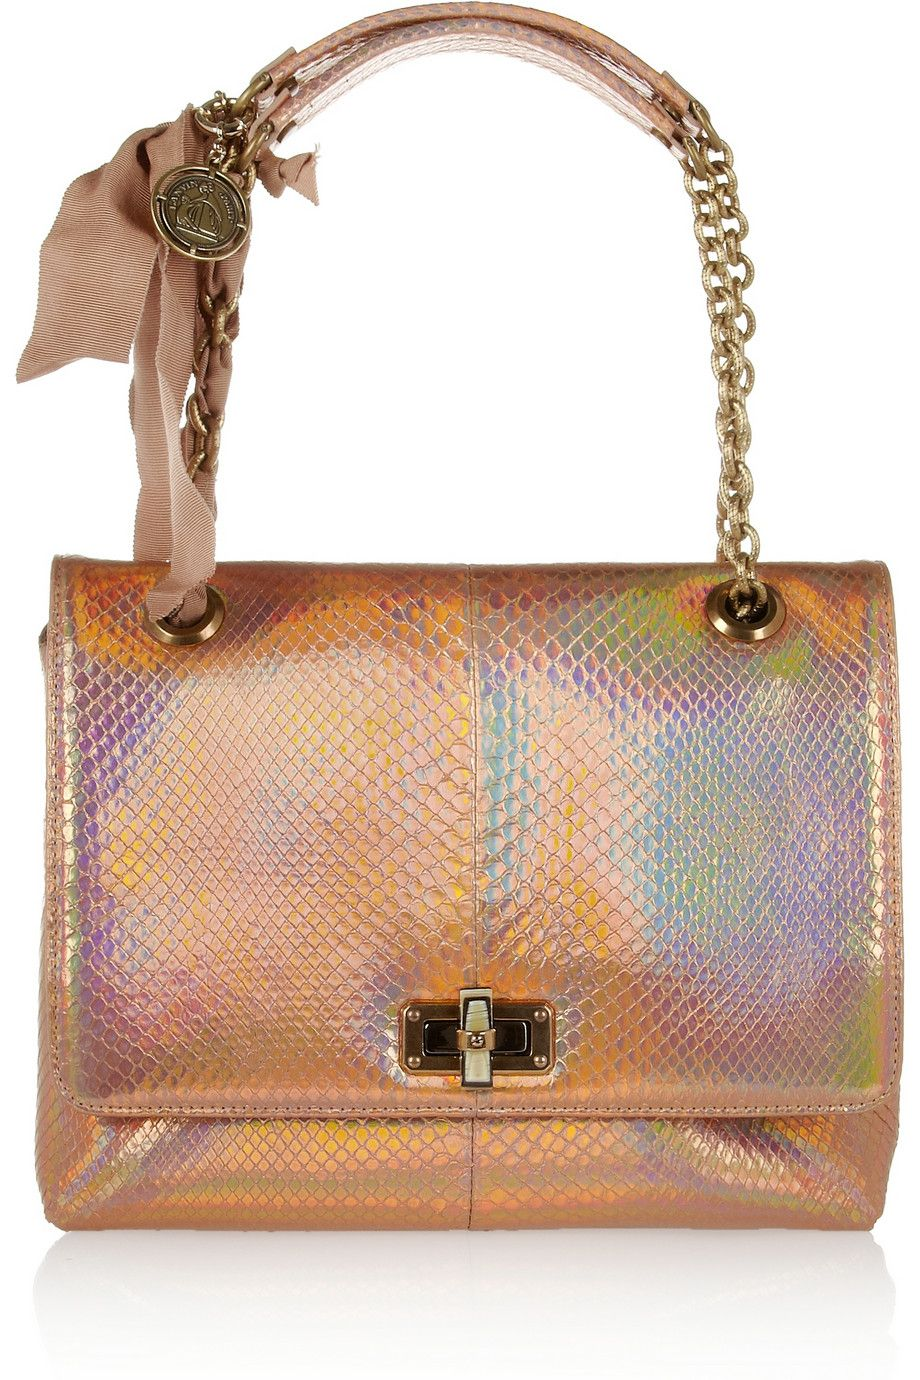 Lanvin - The Happy medium holographic python shoulder bag